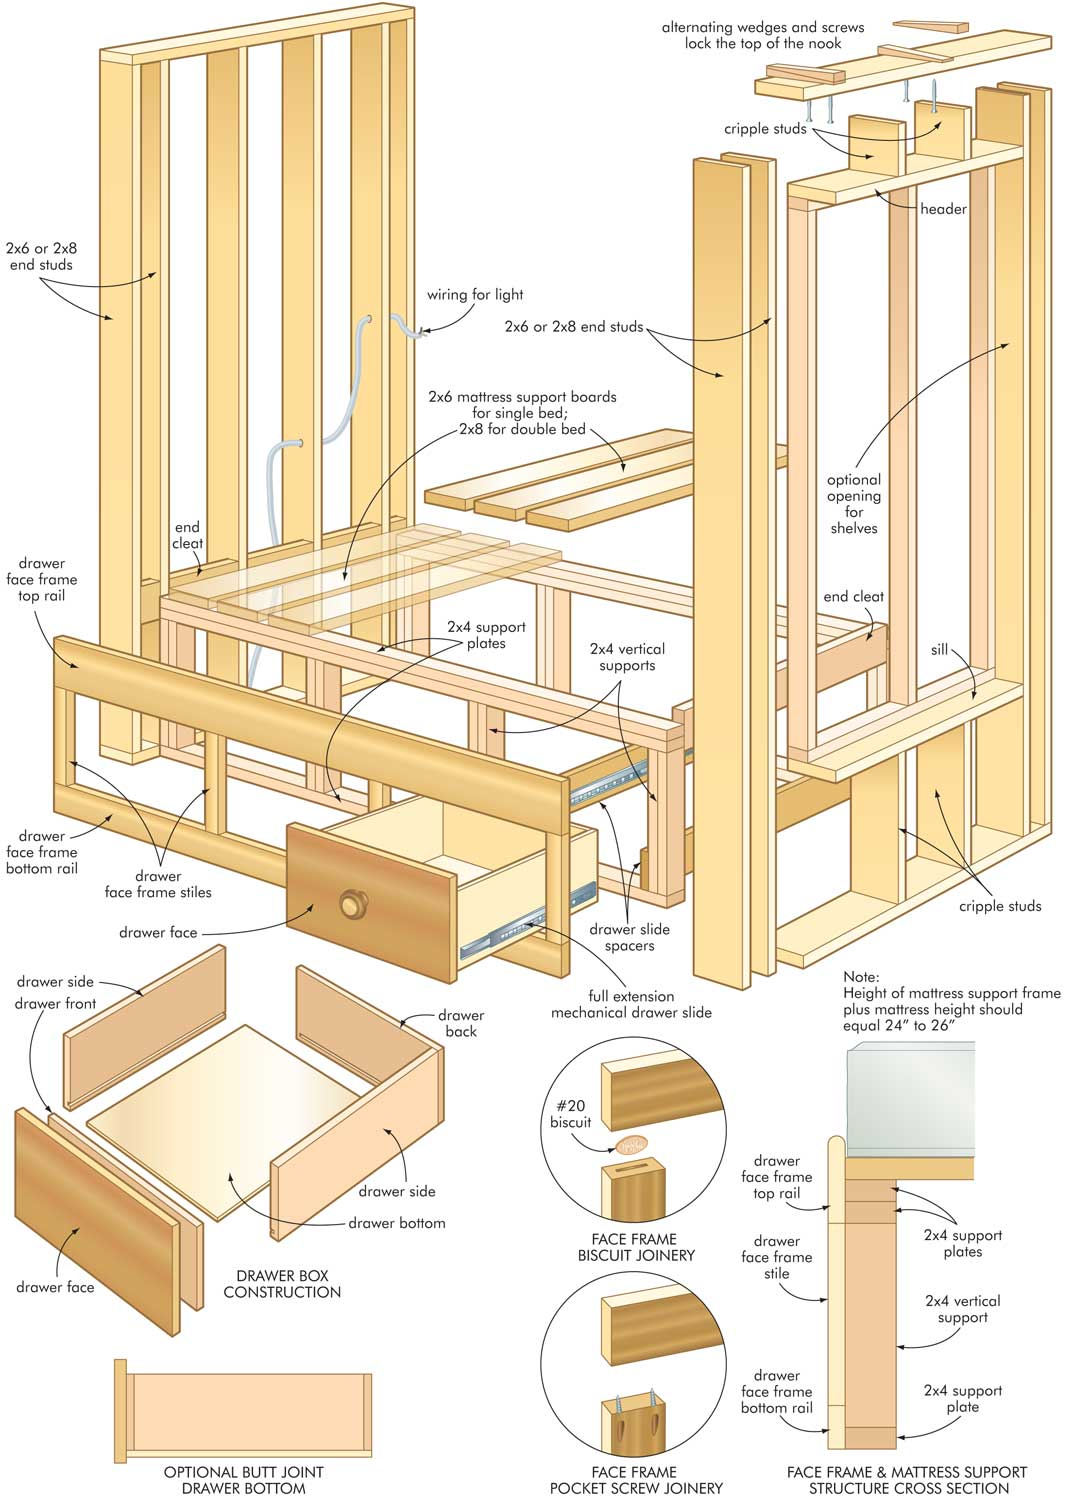 Woodworking building plans pdf woodworking for Bunk house plans